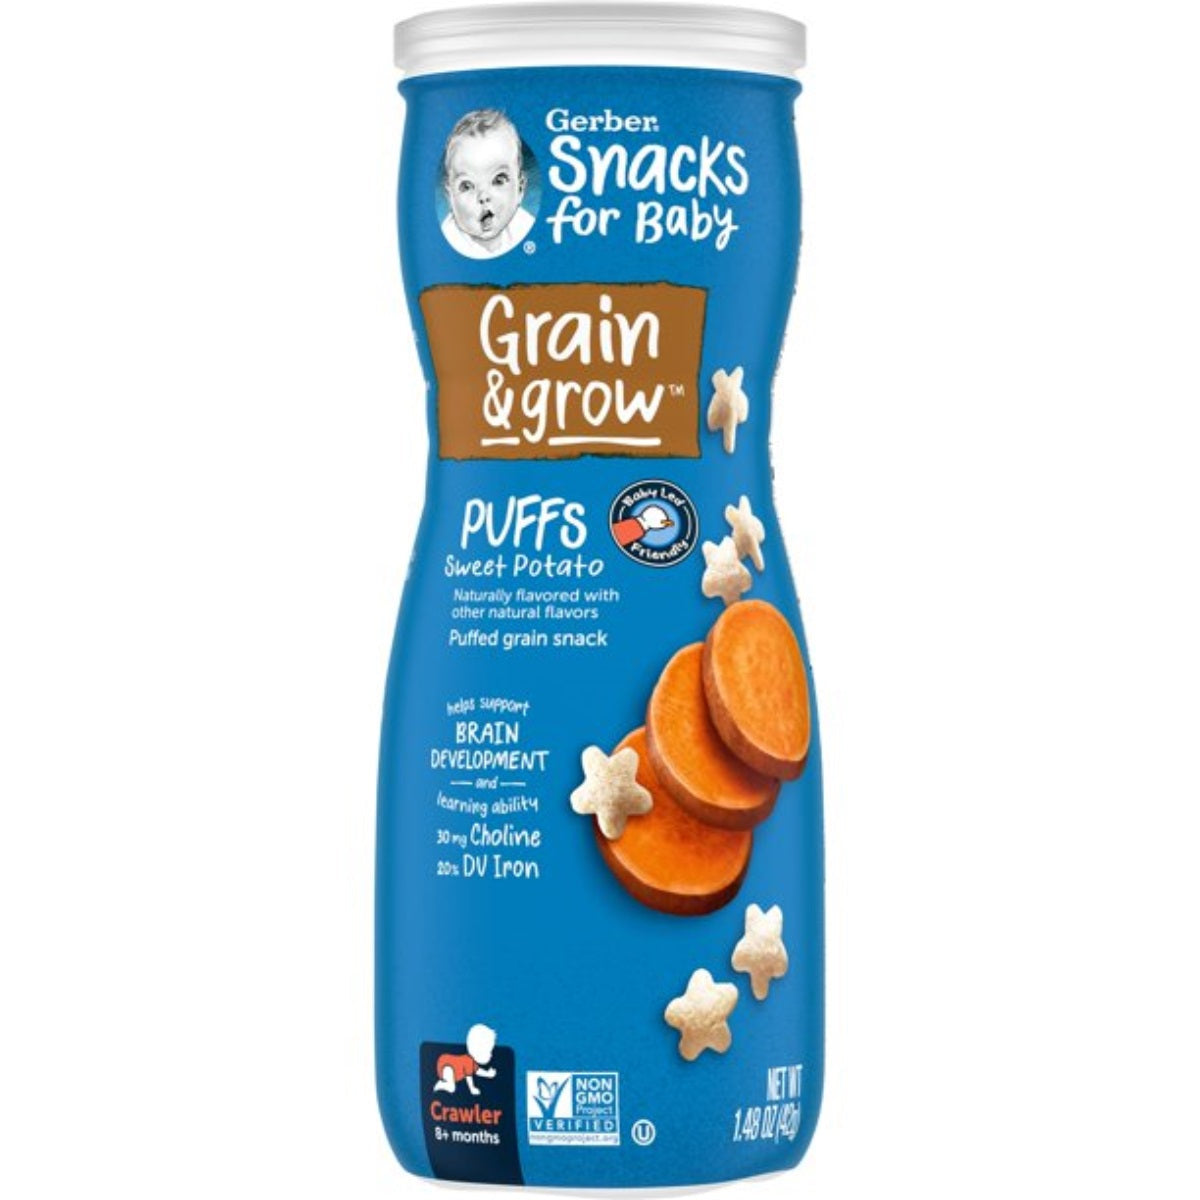 Gerber Puffs 42g (1.48oz) - Sweet Potato